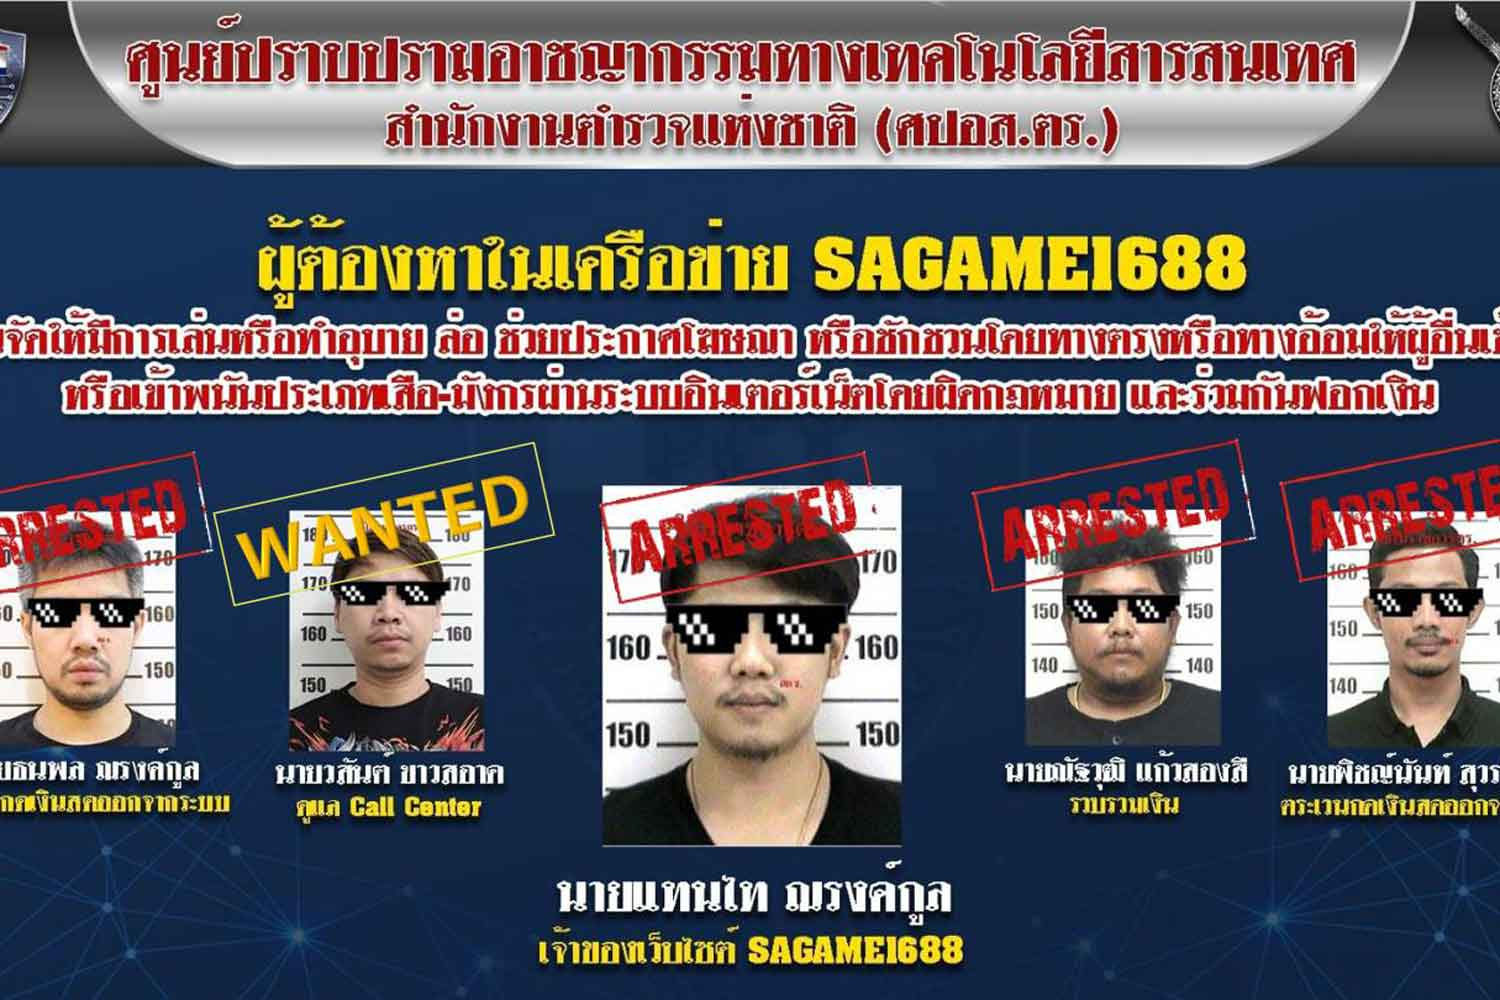 Police put on display pictures of five suspects in an online gambling network. Four of them have been arrested.